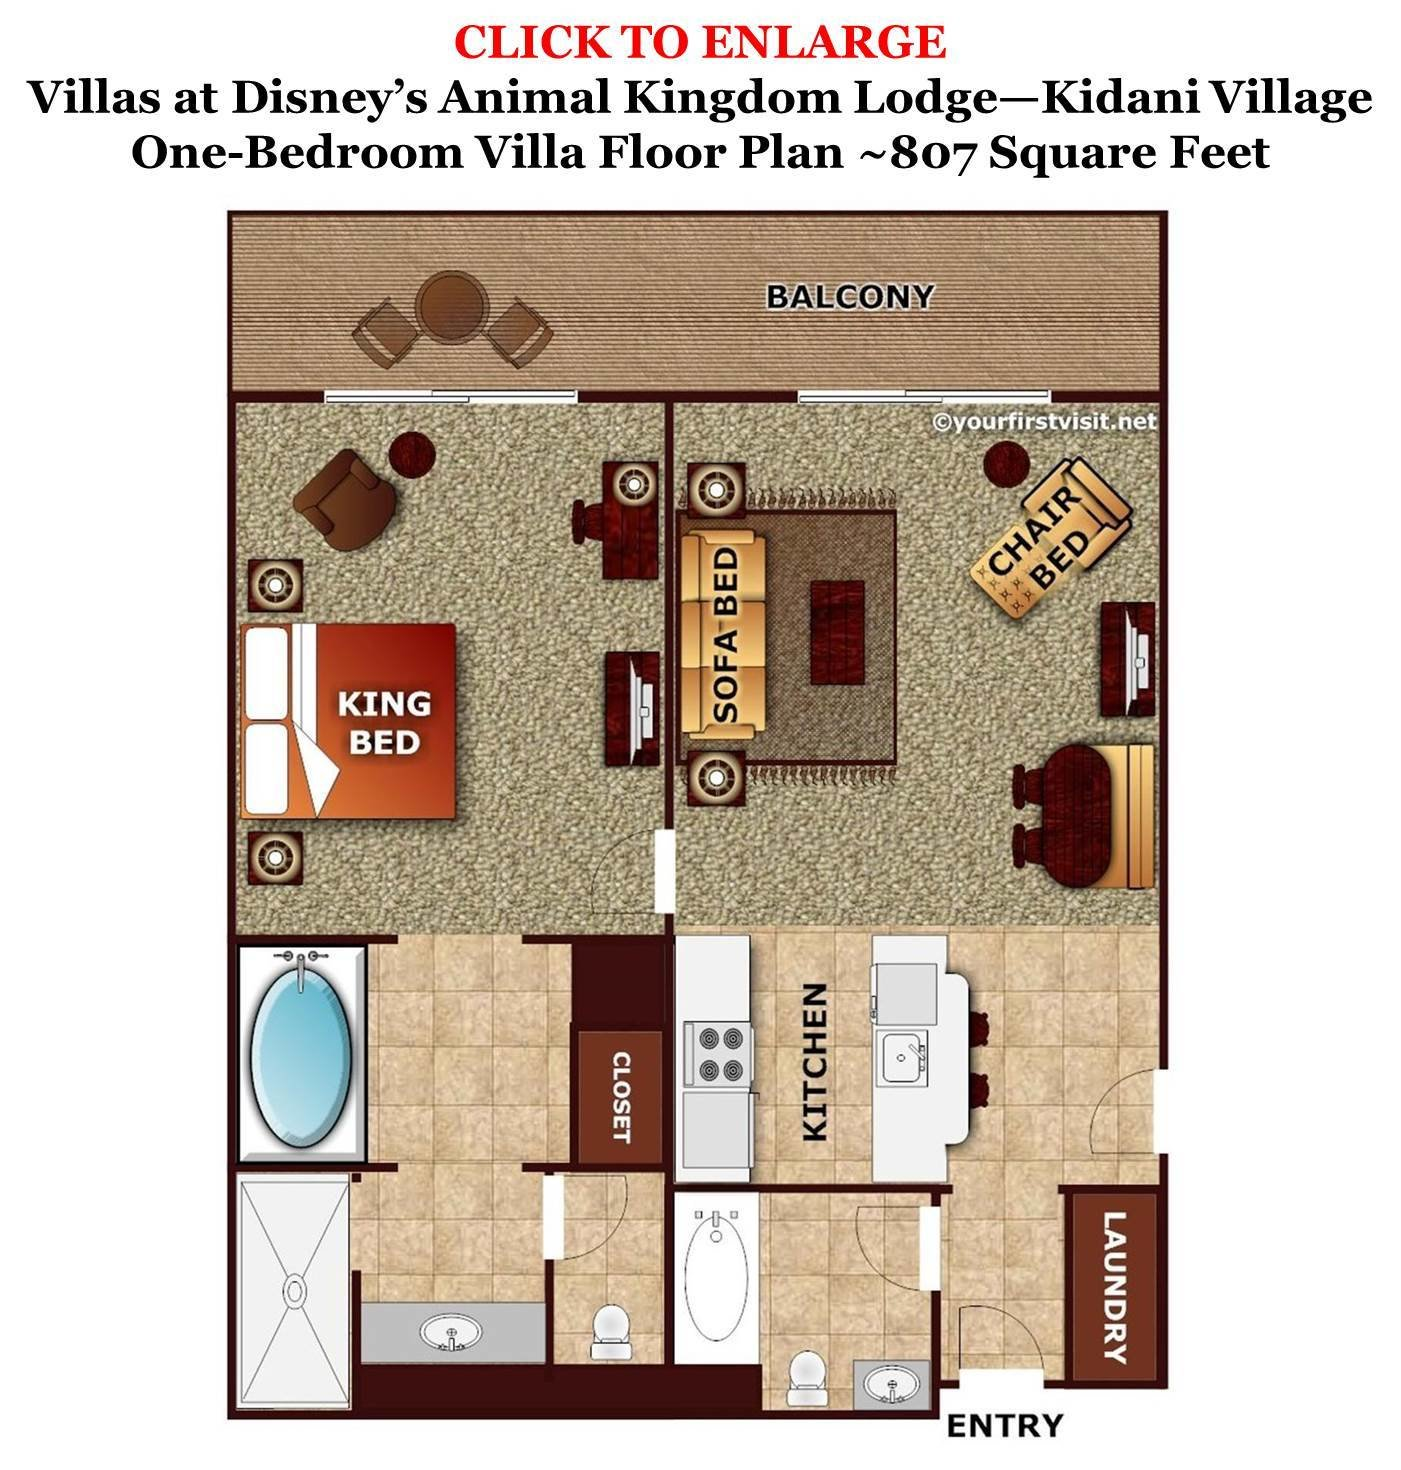 Best Review Kidani Village At Disney's Animal Kingdom Villas Yourfirstvisit Net With Pictures